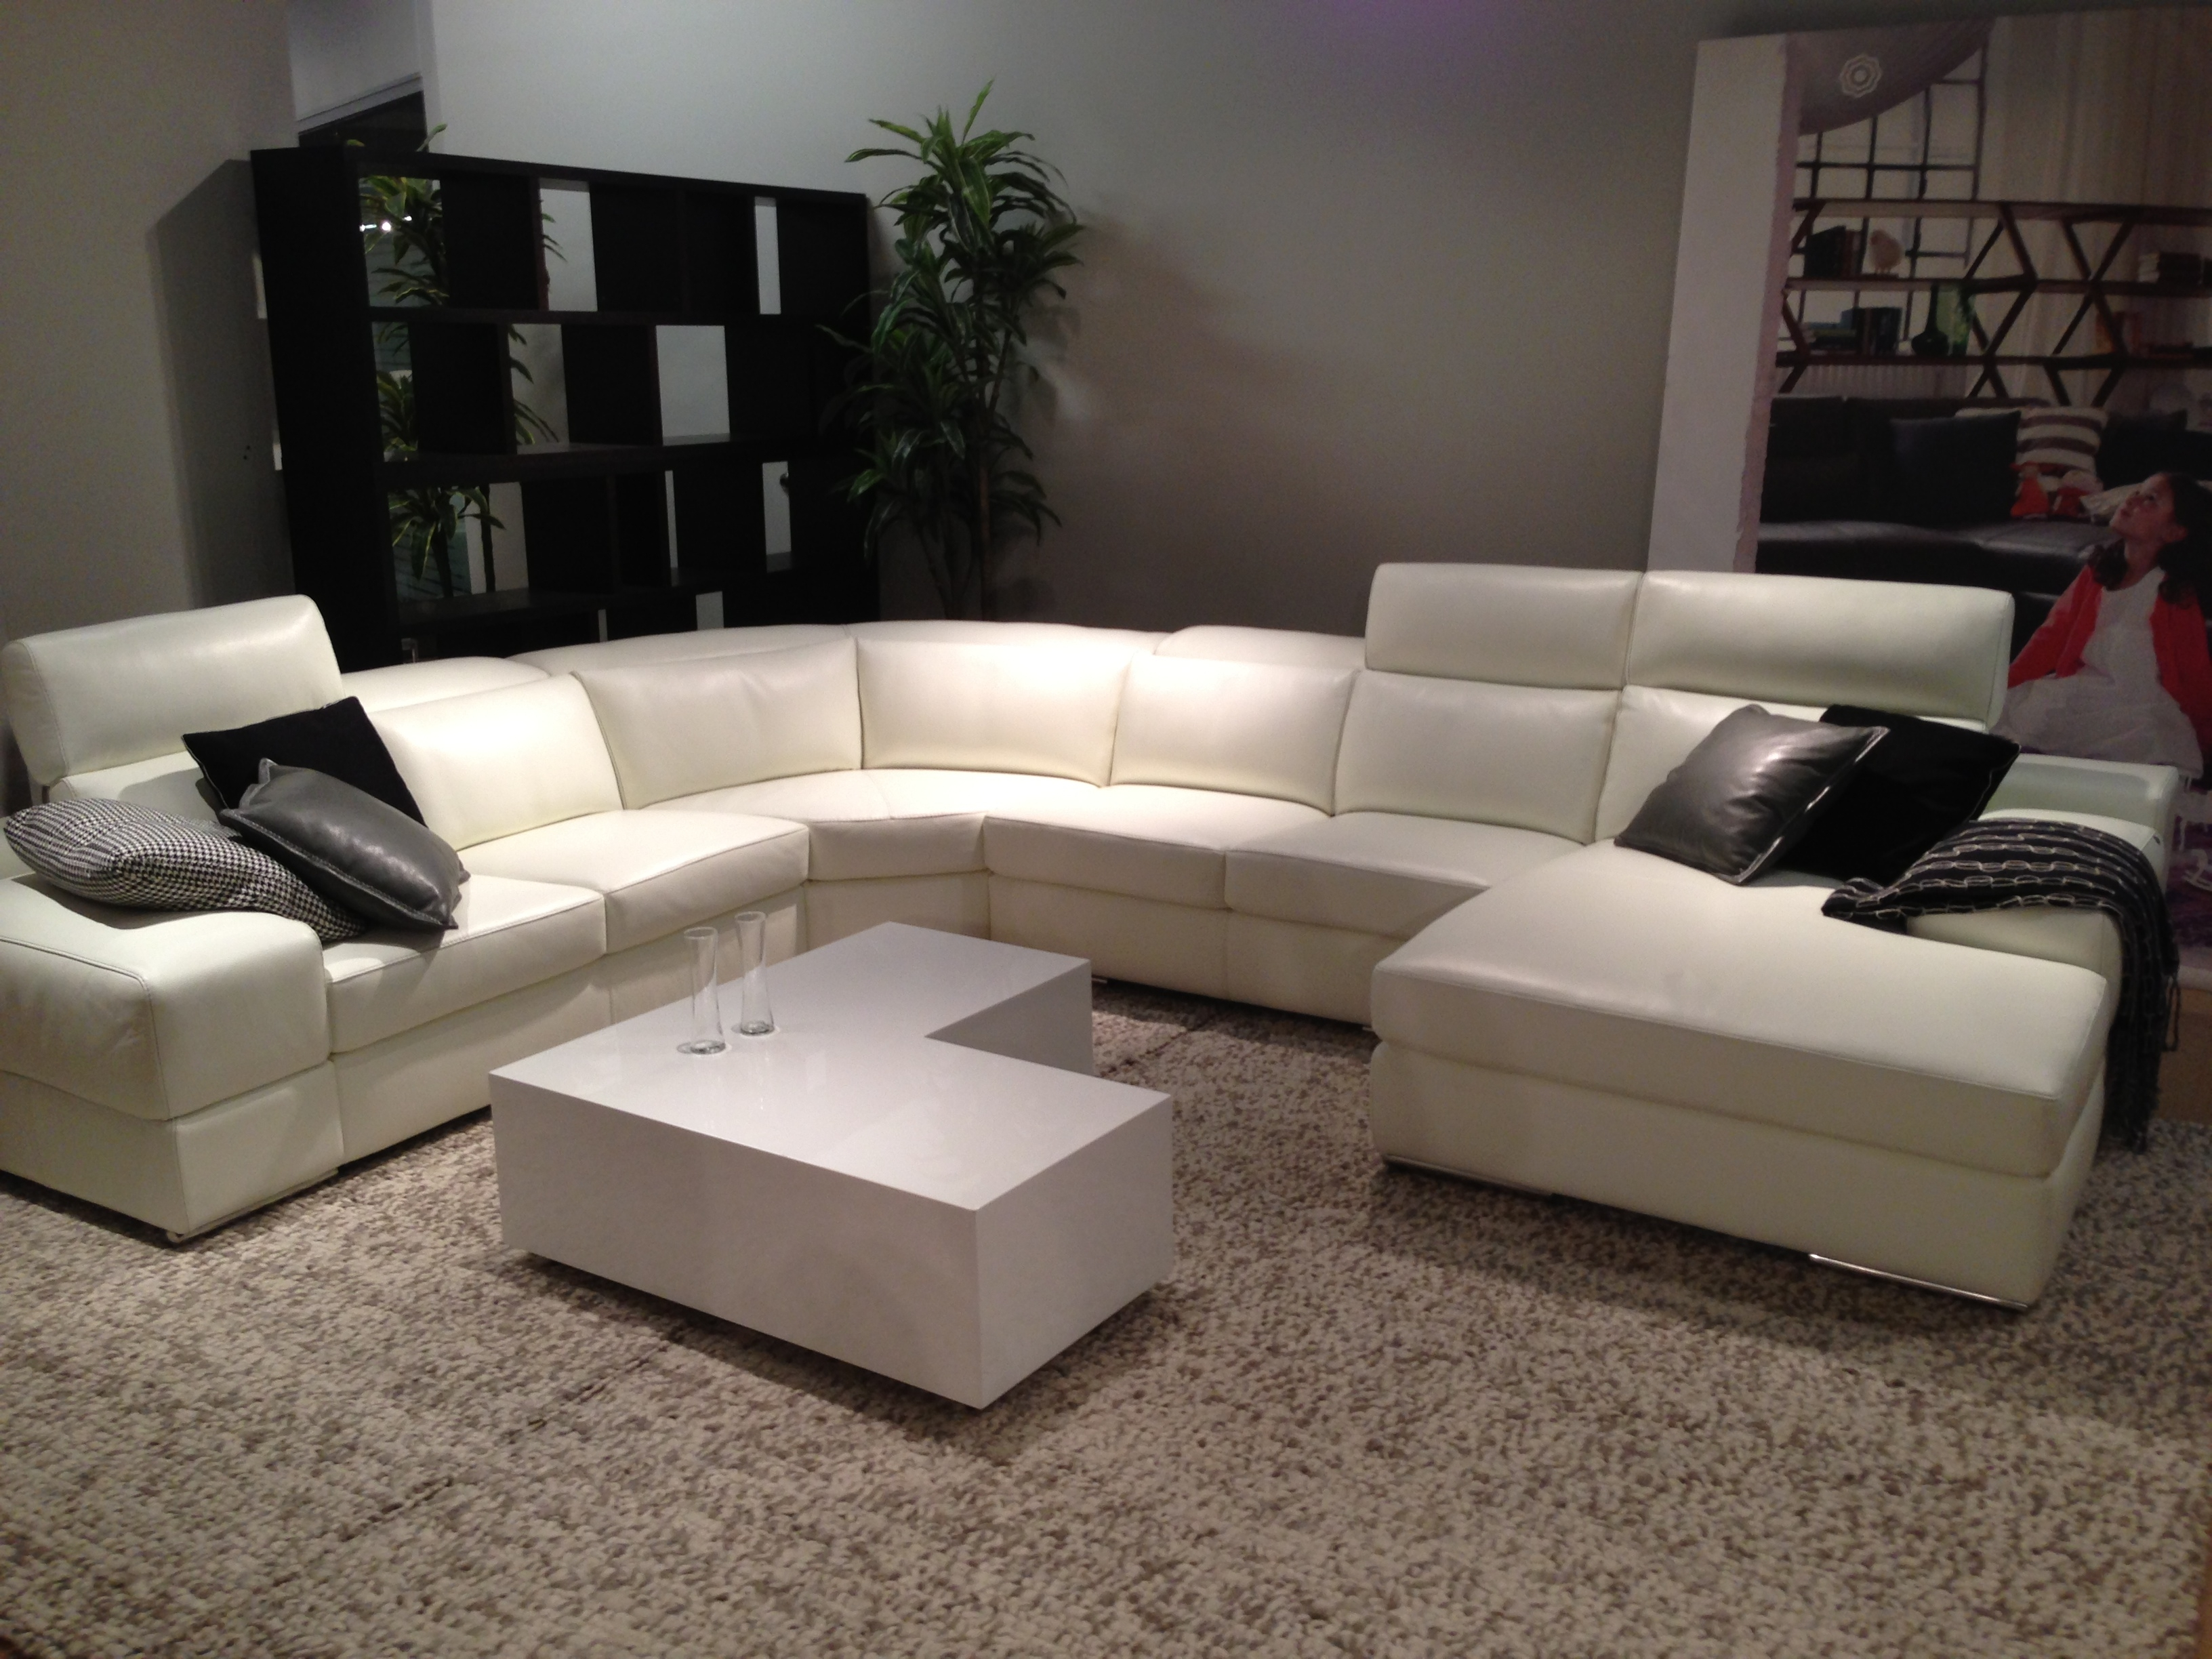 Modern White Leather Sectional Htl Portland Oregon 1,632×1,224 In Portland Sectional Sofas (Image 4 of 10)